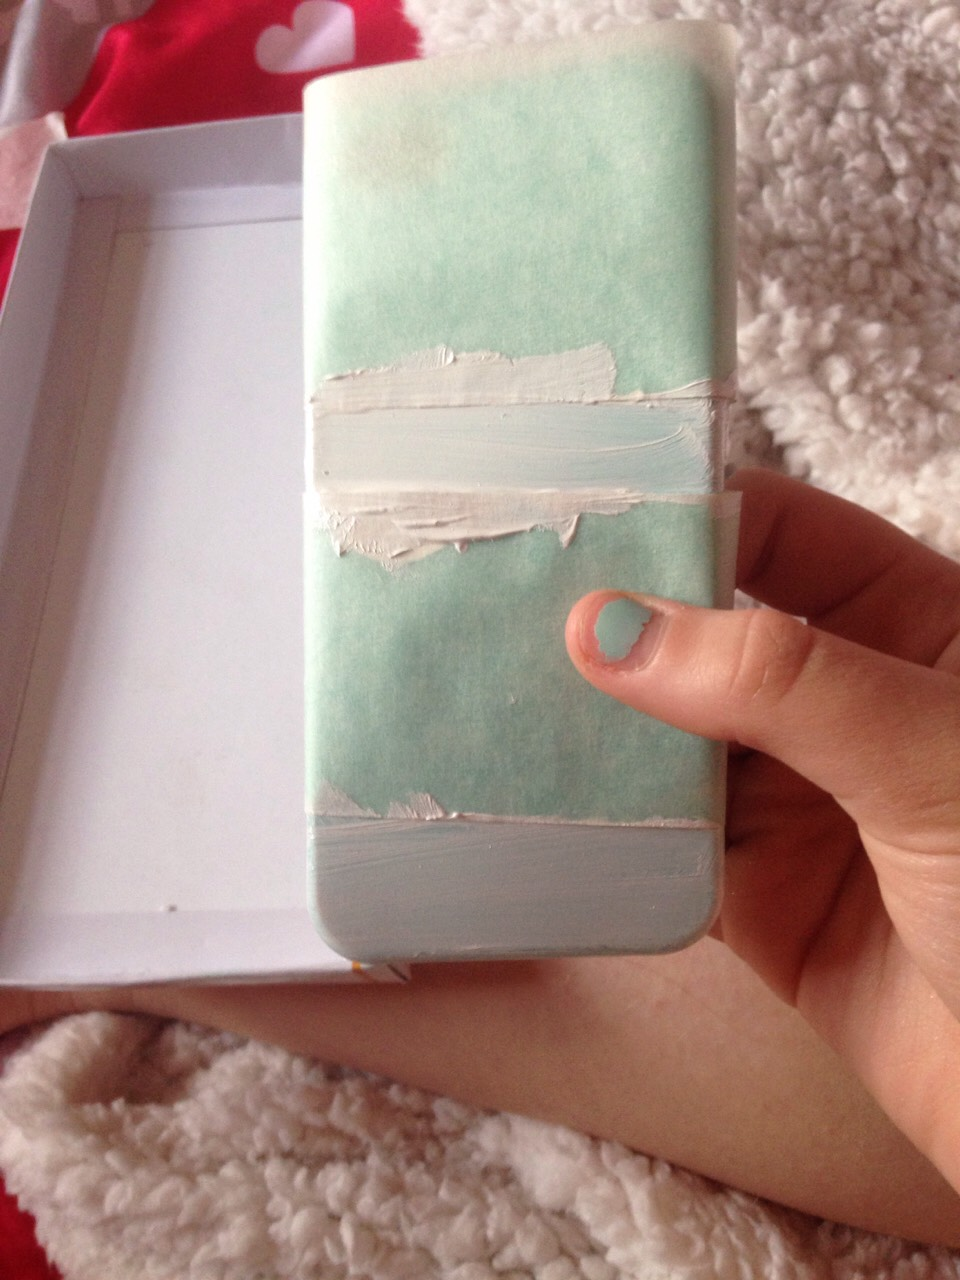 Paint the case and let it dry and then take off the tape and if u want it to stay spray hairspray  on it